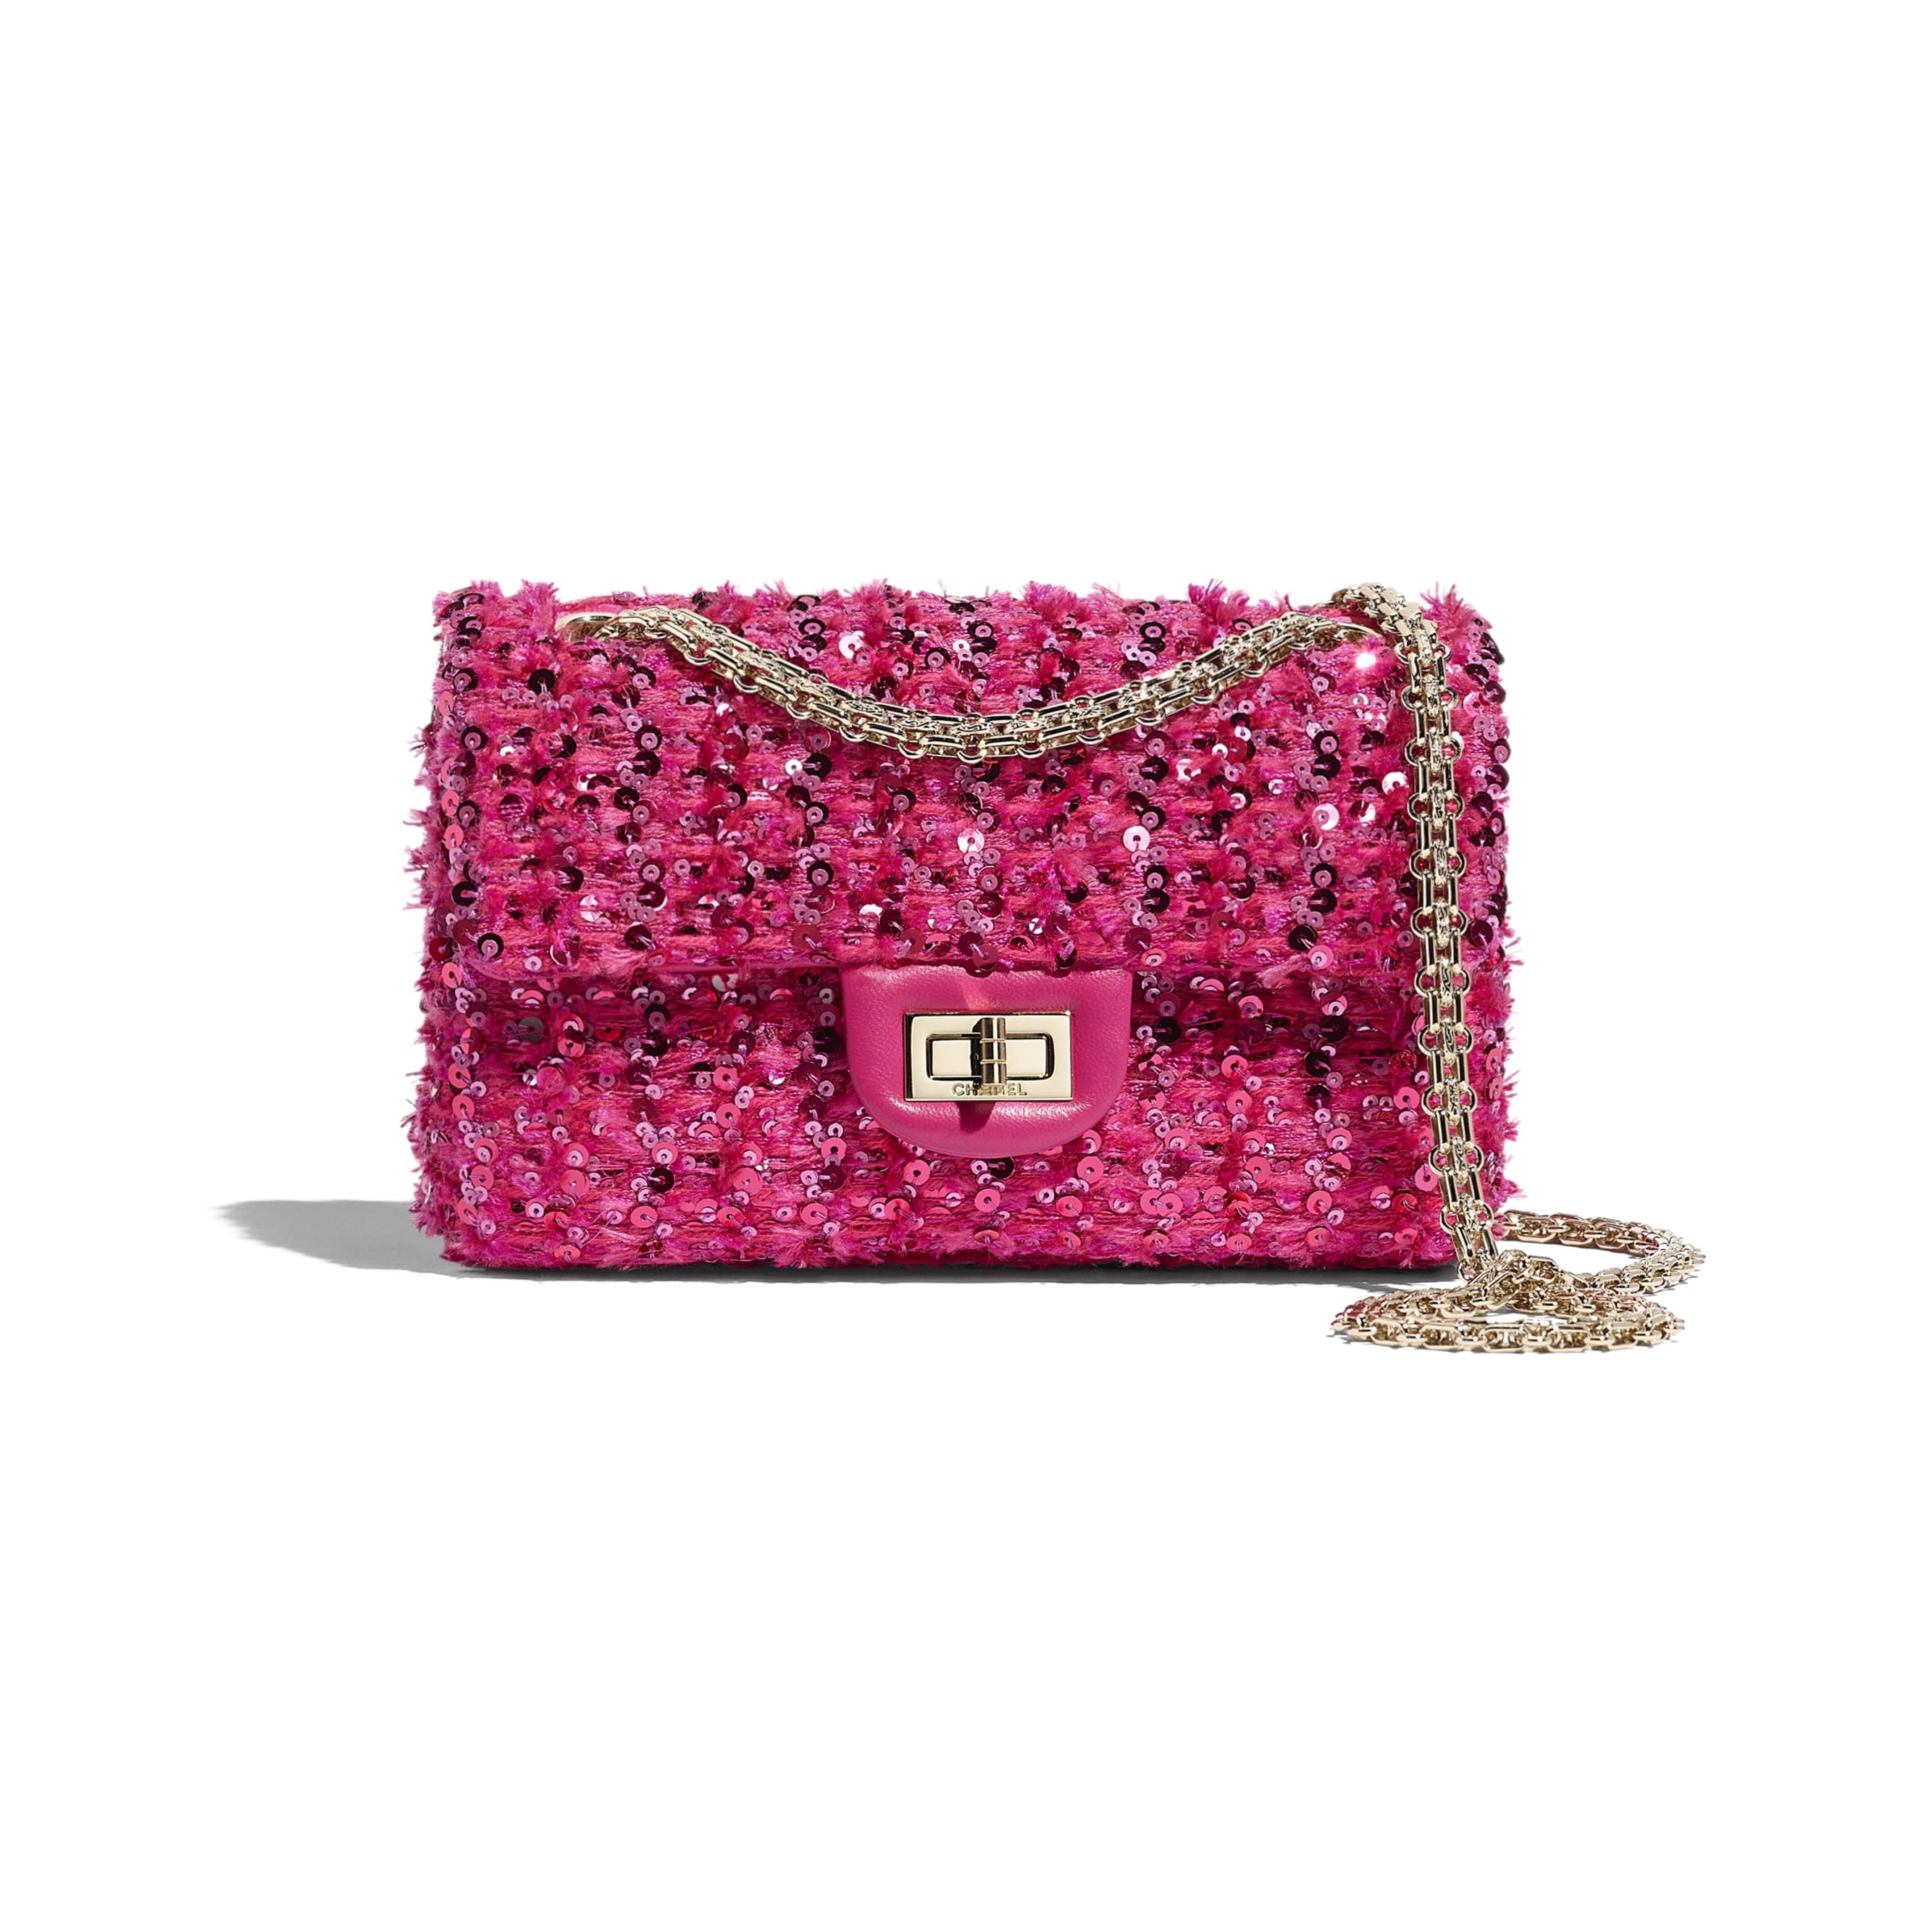 Small 2.55 Handbag - Pink - Sequins & Gold-Tone Metal - CHANEL - Default view - see standard sized version